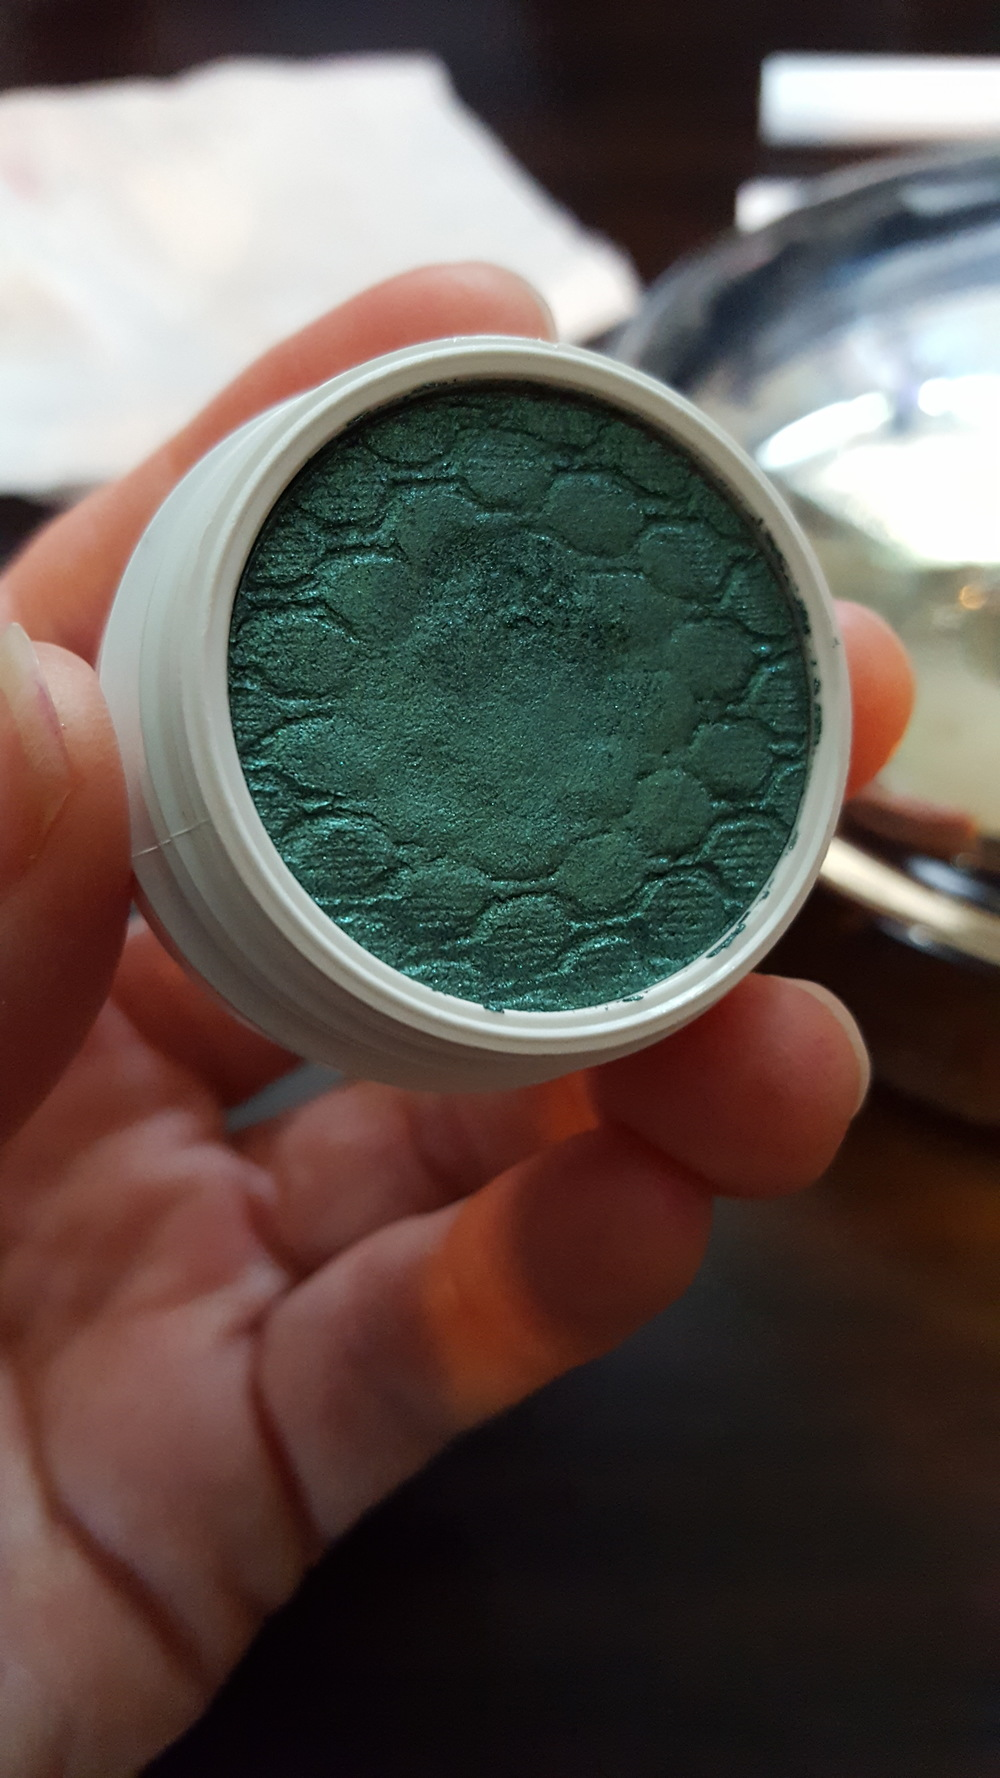 This is an eye shadow in the color Flower Shop. All the powder products come in individual pots and are stamped with the same quilted pattern.